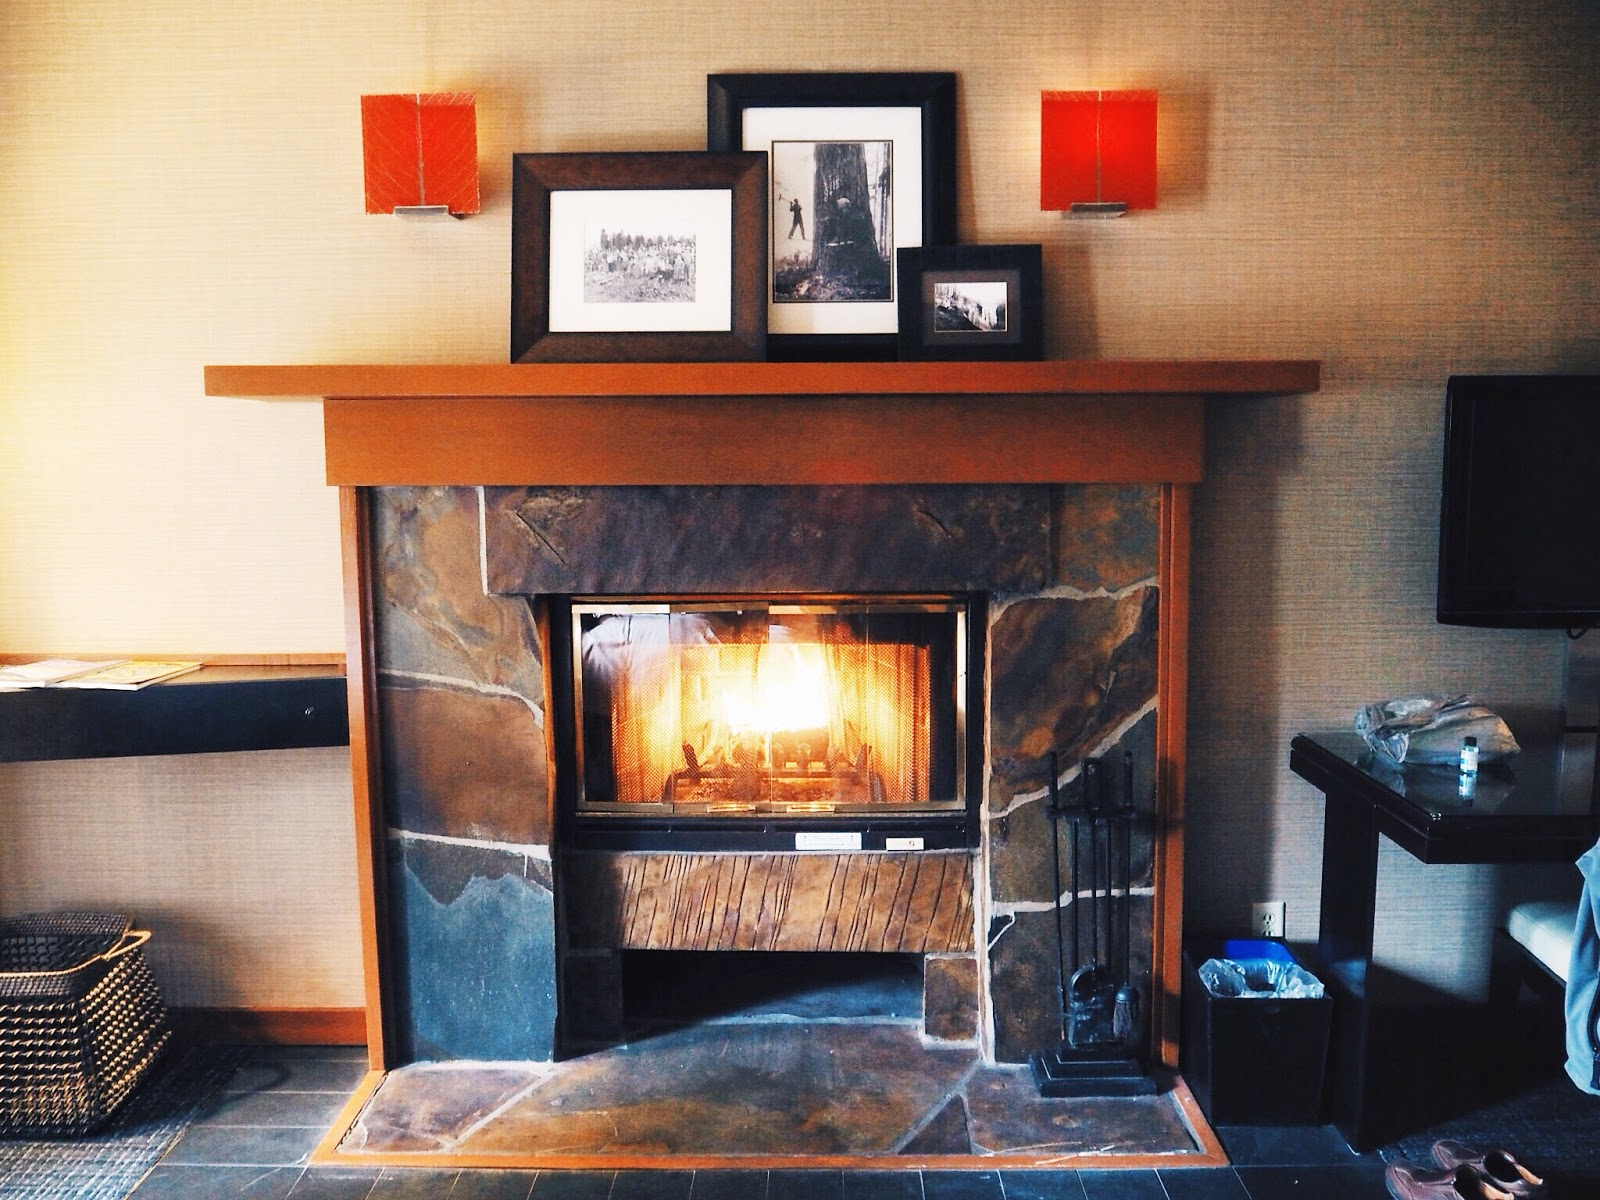 salish lodge & spa, snoqualmie falls | angloyankophile